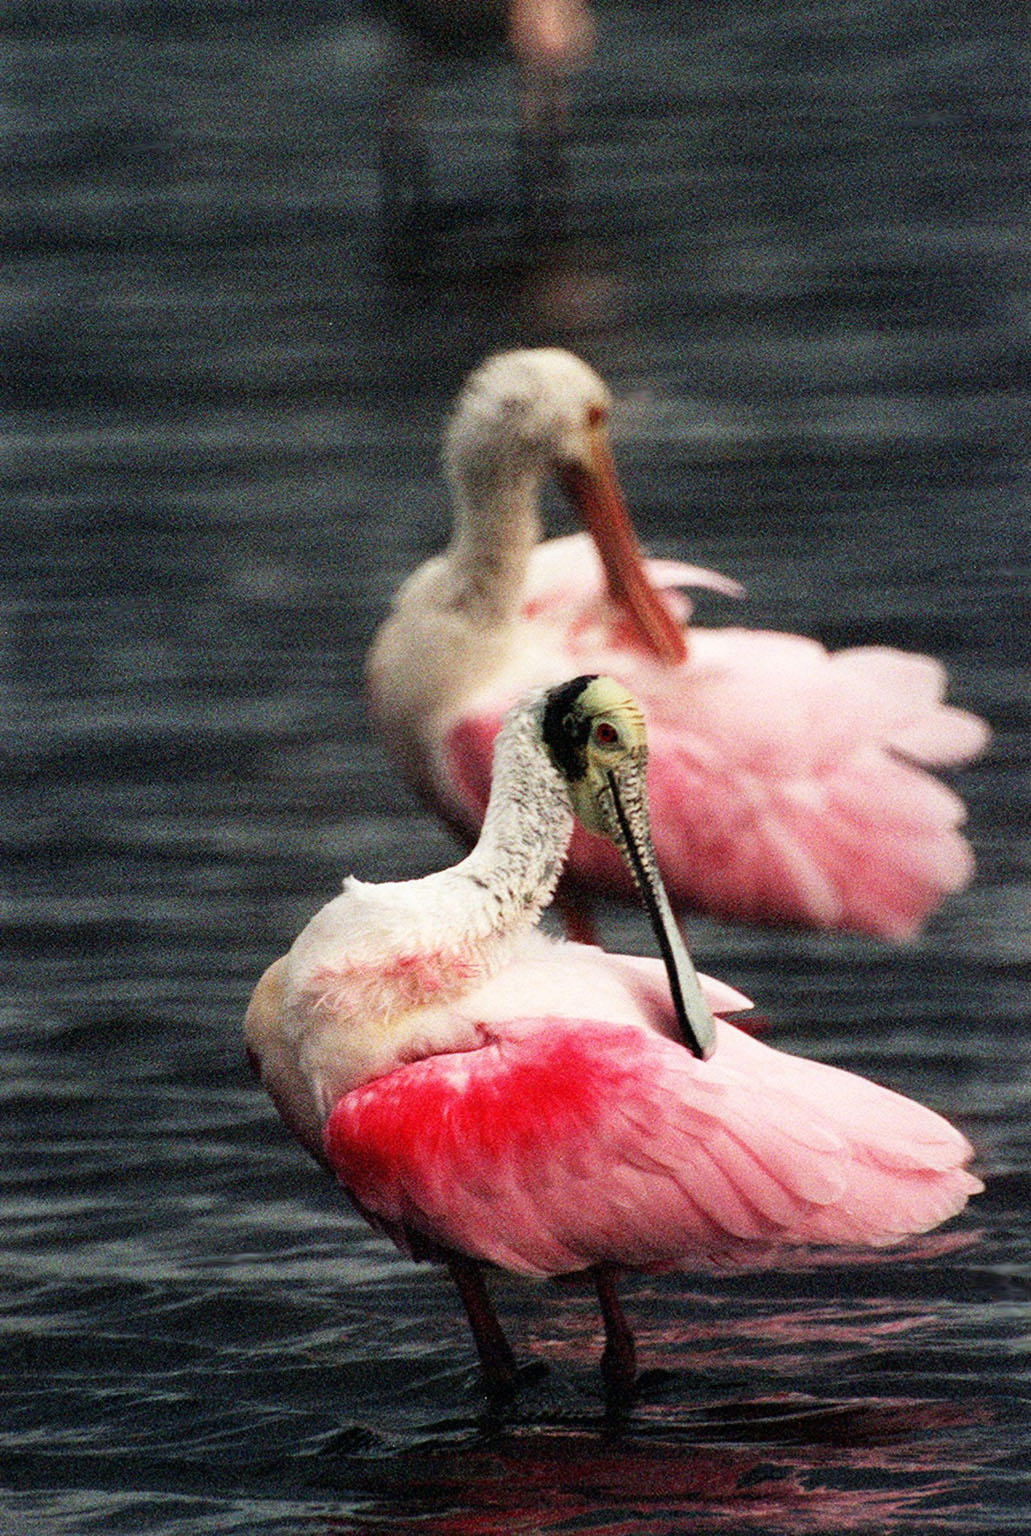 KENNEDY SPACE CENTER, FLA. -- In the Merritt Island National Wildlife Refuge, two roseate spoonbills mirror each other as they preen their lipstick-colored feathers. The birds, named for their brilliant pink color and paddle-shaped bill, feed in shallow water by swinging their bill back and forth, scooping up small fish and crustaceans. They typically inhabit mangroves on the coasts of southern Florida, Louisiana and Texas. The 92,000-acre refuge, which shares a boundary with Kennedy Space Center, is a habitat for more than 330 species of birds, 31 mammals, 117 fishes and 65 amphibians and reptiles. The marshes and open water of the refuge provide wintering areas for 23 species of migratory waterfowl, as well as a year-round home for great blue herons, great egrets, wood storks, cormorants, brown pelicans and other species of marsh and shore birds